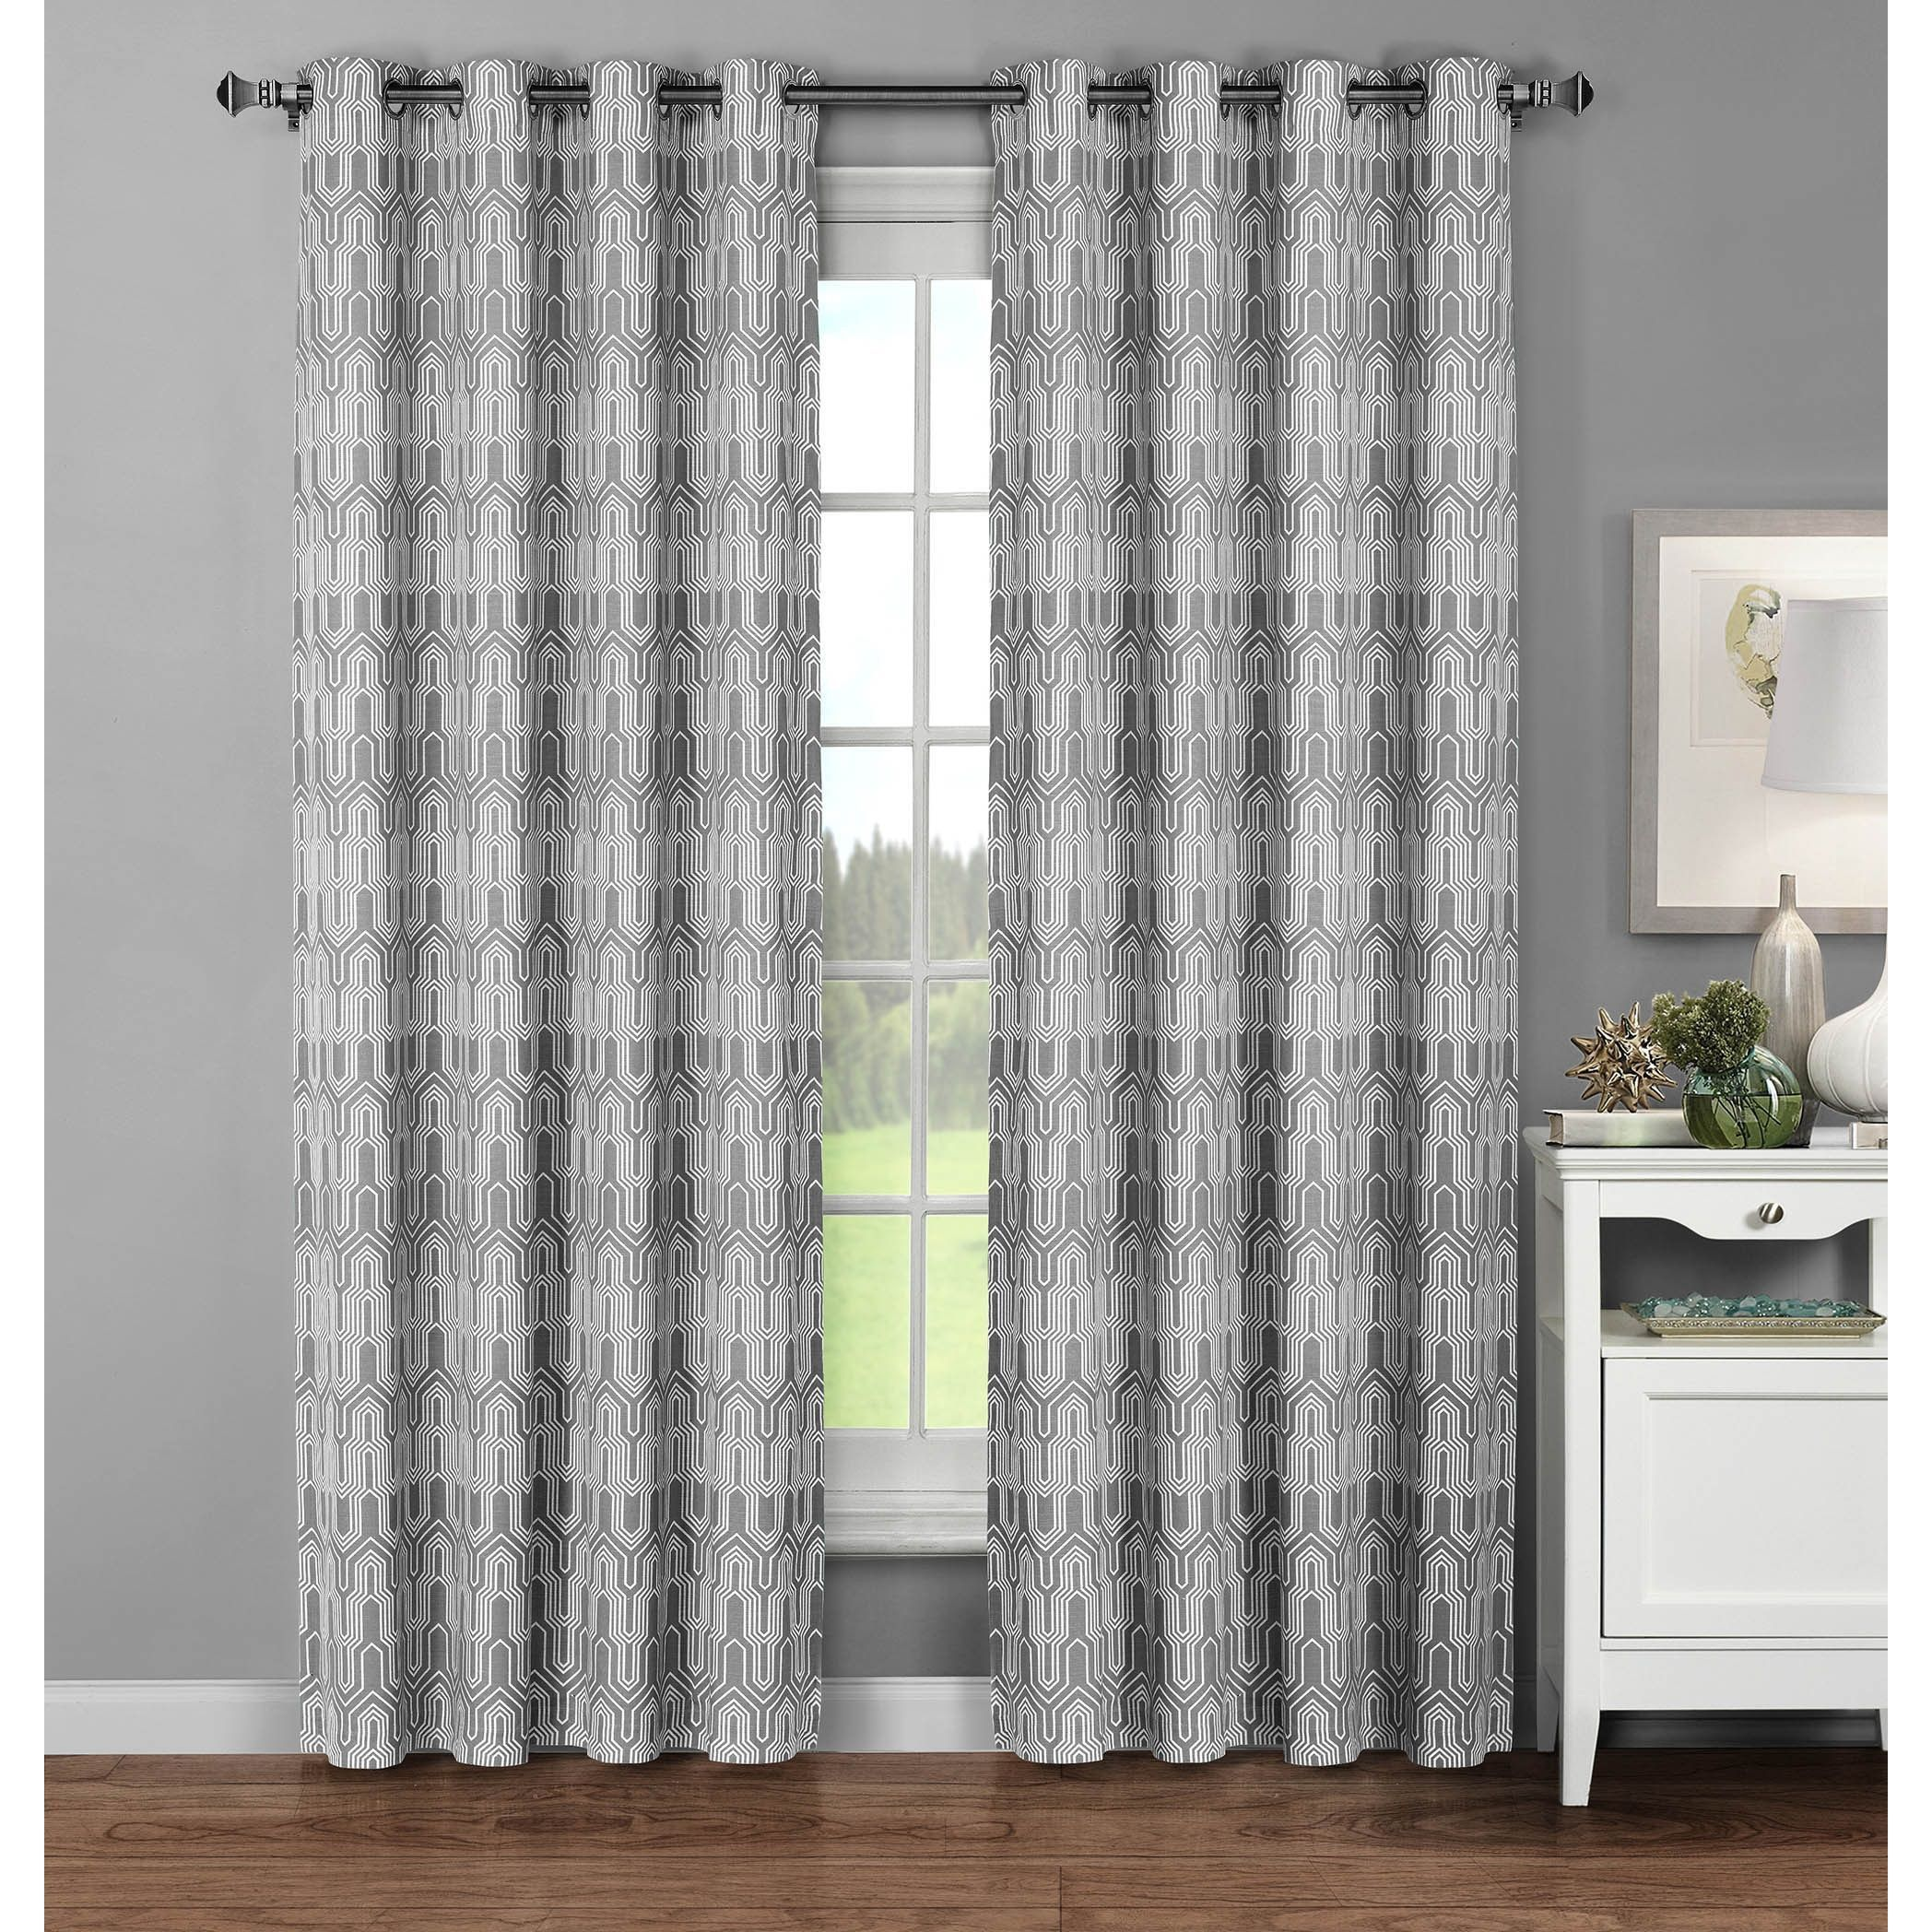 lucia accessories adorable w st curtains small world tropical treatment curtain simple coverings wide window ga treatments windows extra short